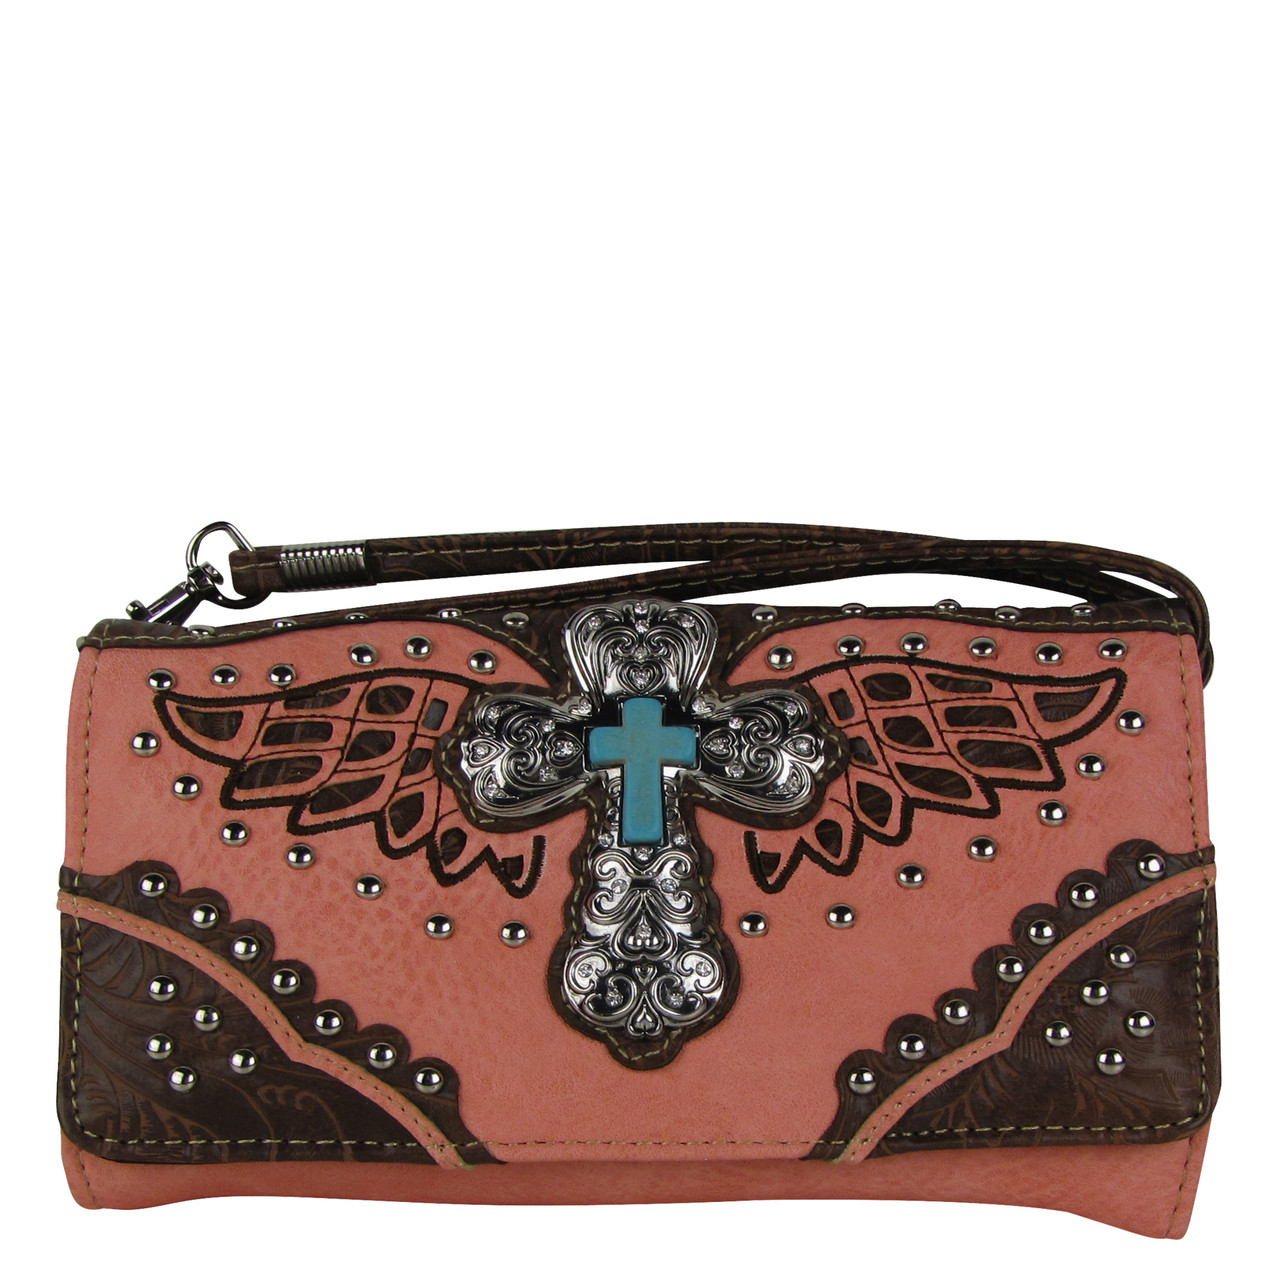 PINK WESTERN CROSS WITH WINGS LOOK CLUTCH TRIFOLD WALLET CW1-1278PNK